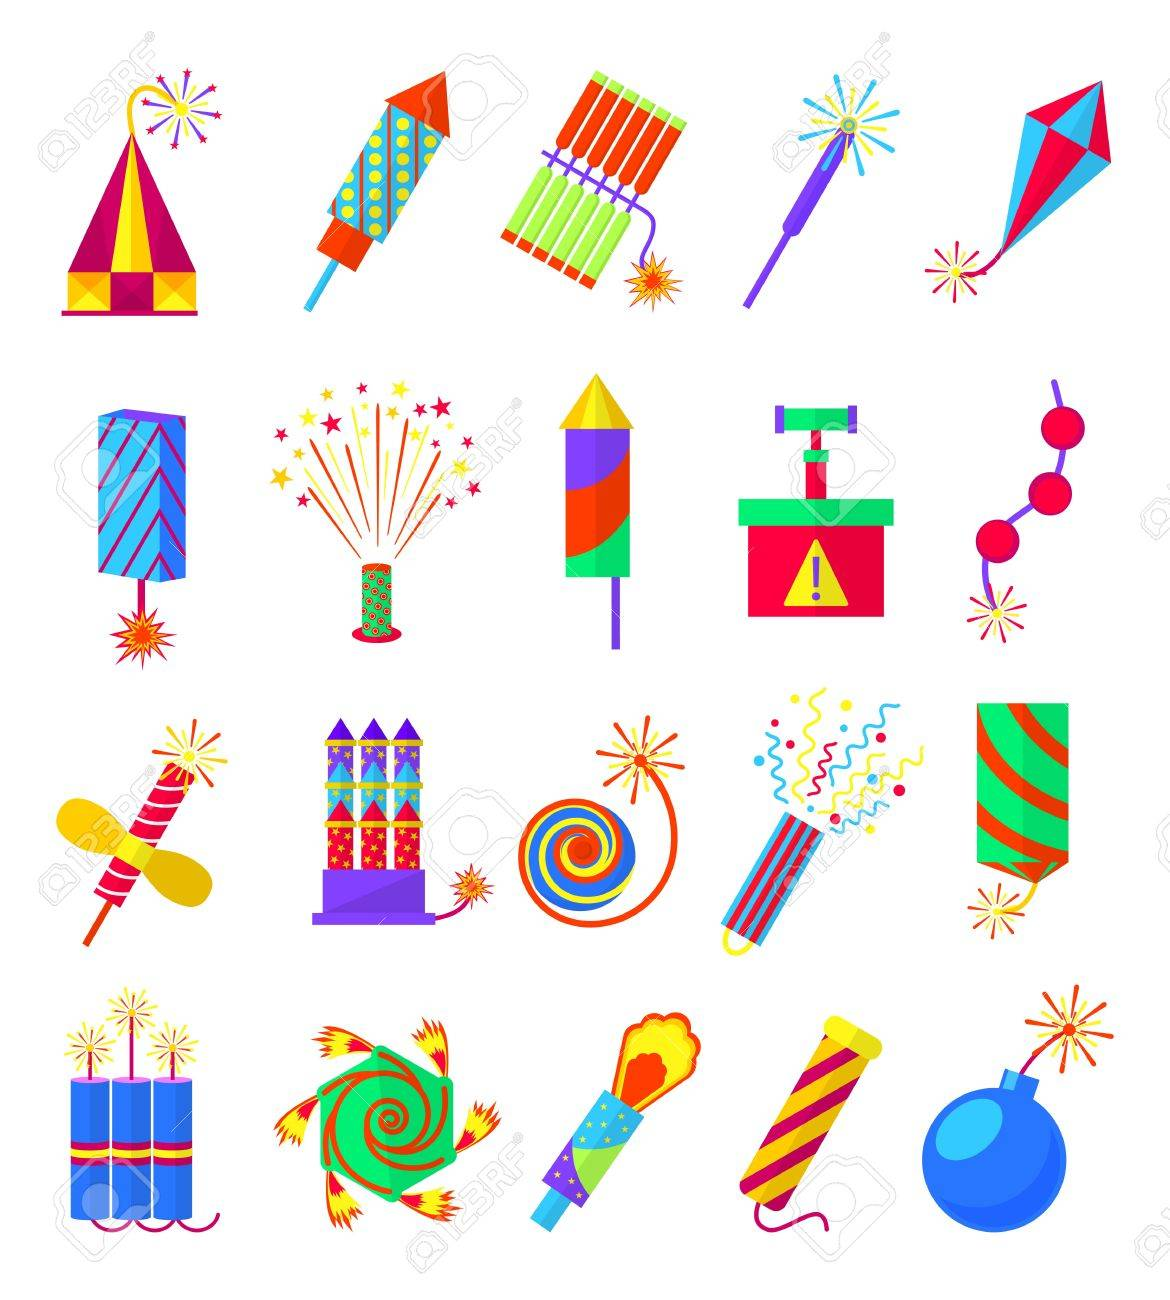 Pyrotechnics Burning Firework Colored Icons Festival Firecrackers And Sparklers Crackers Petards Isolated On